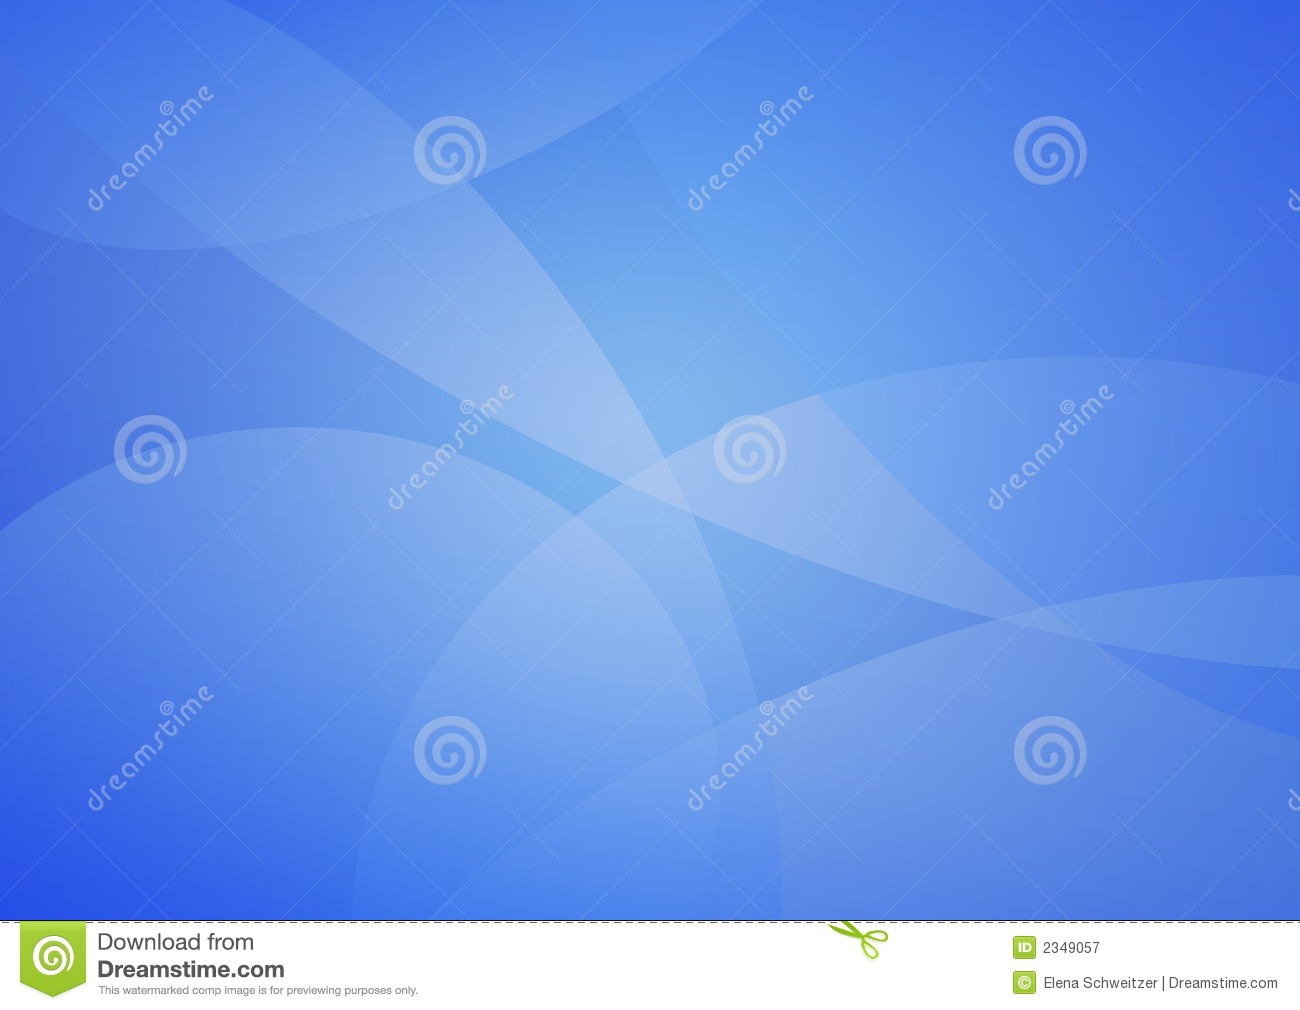 Abstract Sports Background Royalty Free Stock Image: Abstract Soft Blue Background Royalty Free Stock